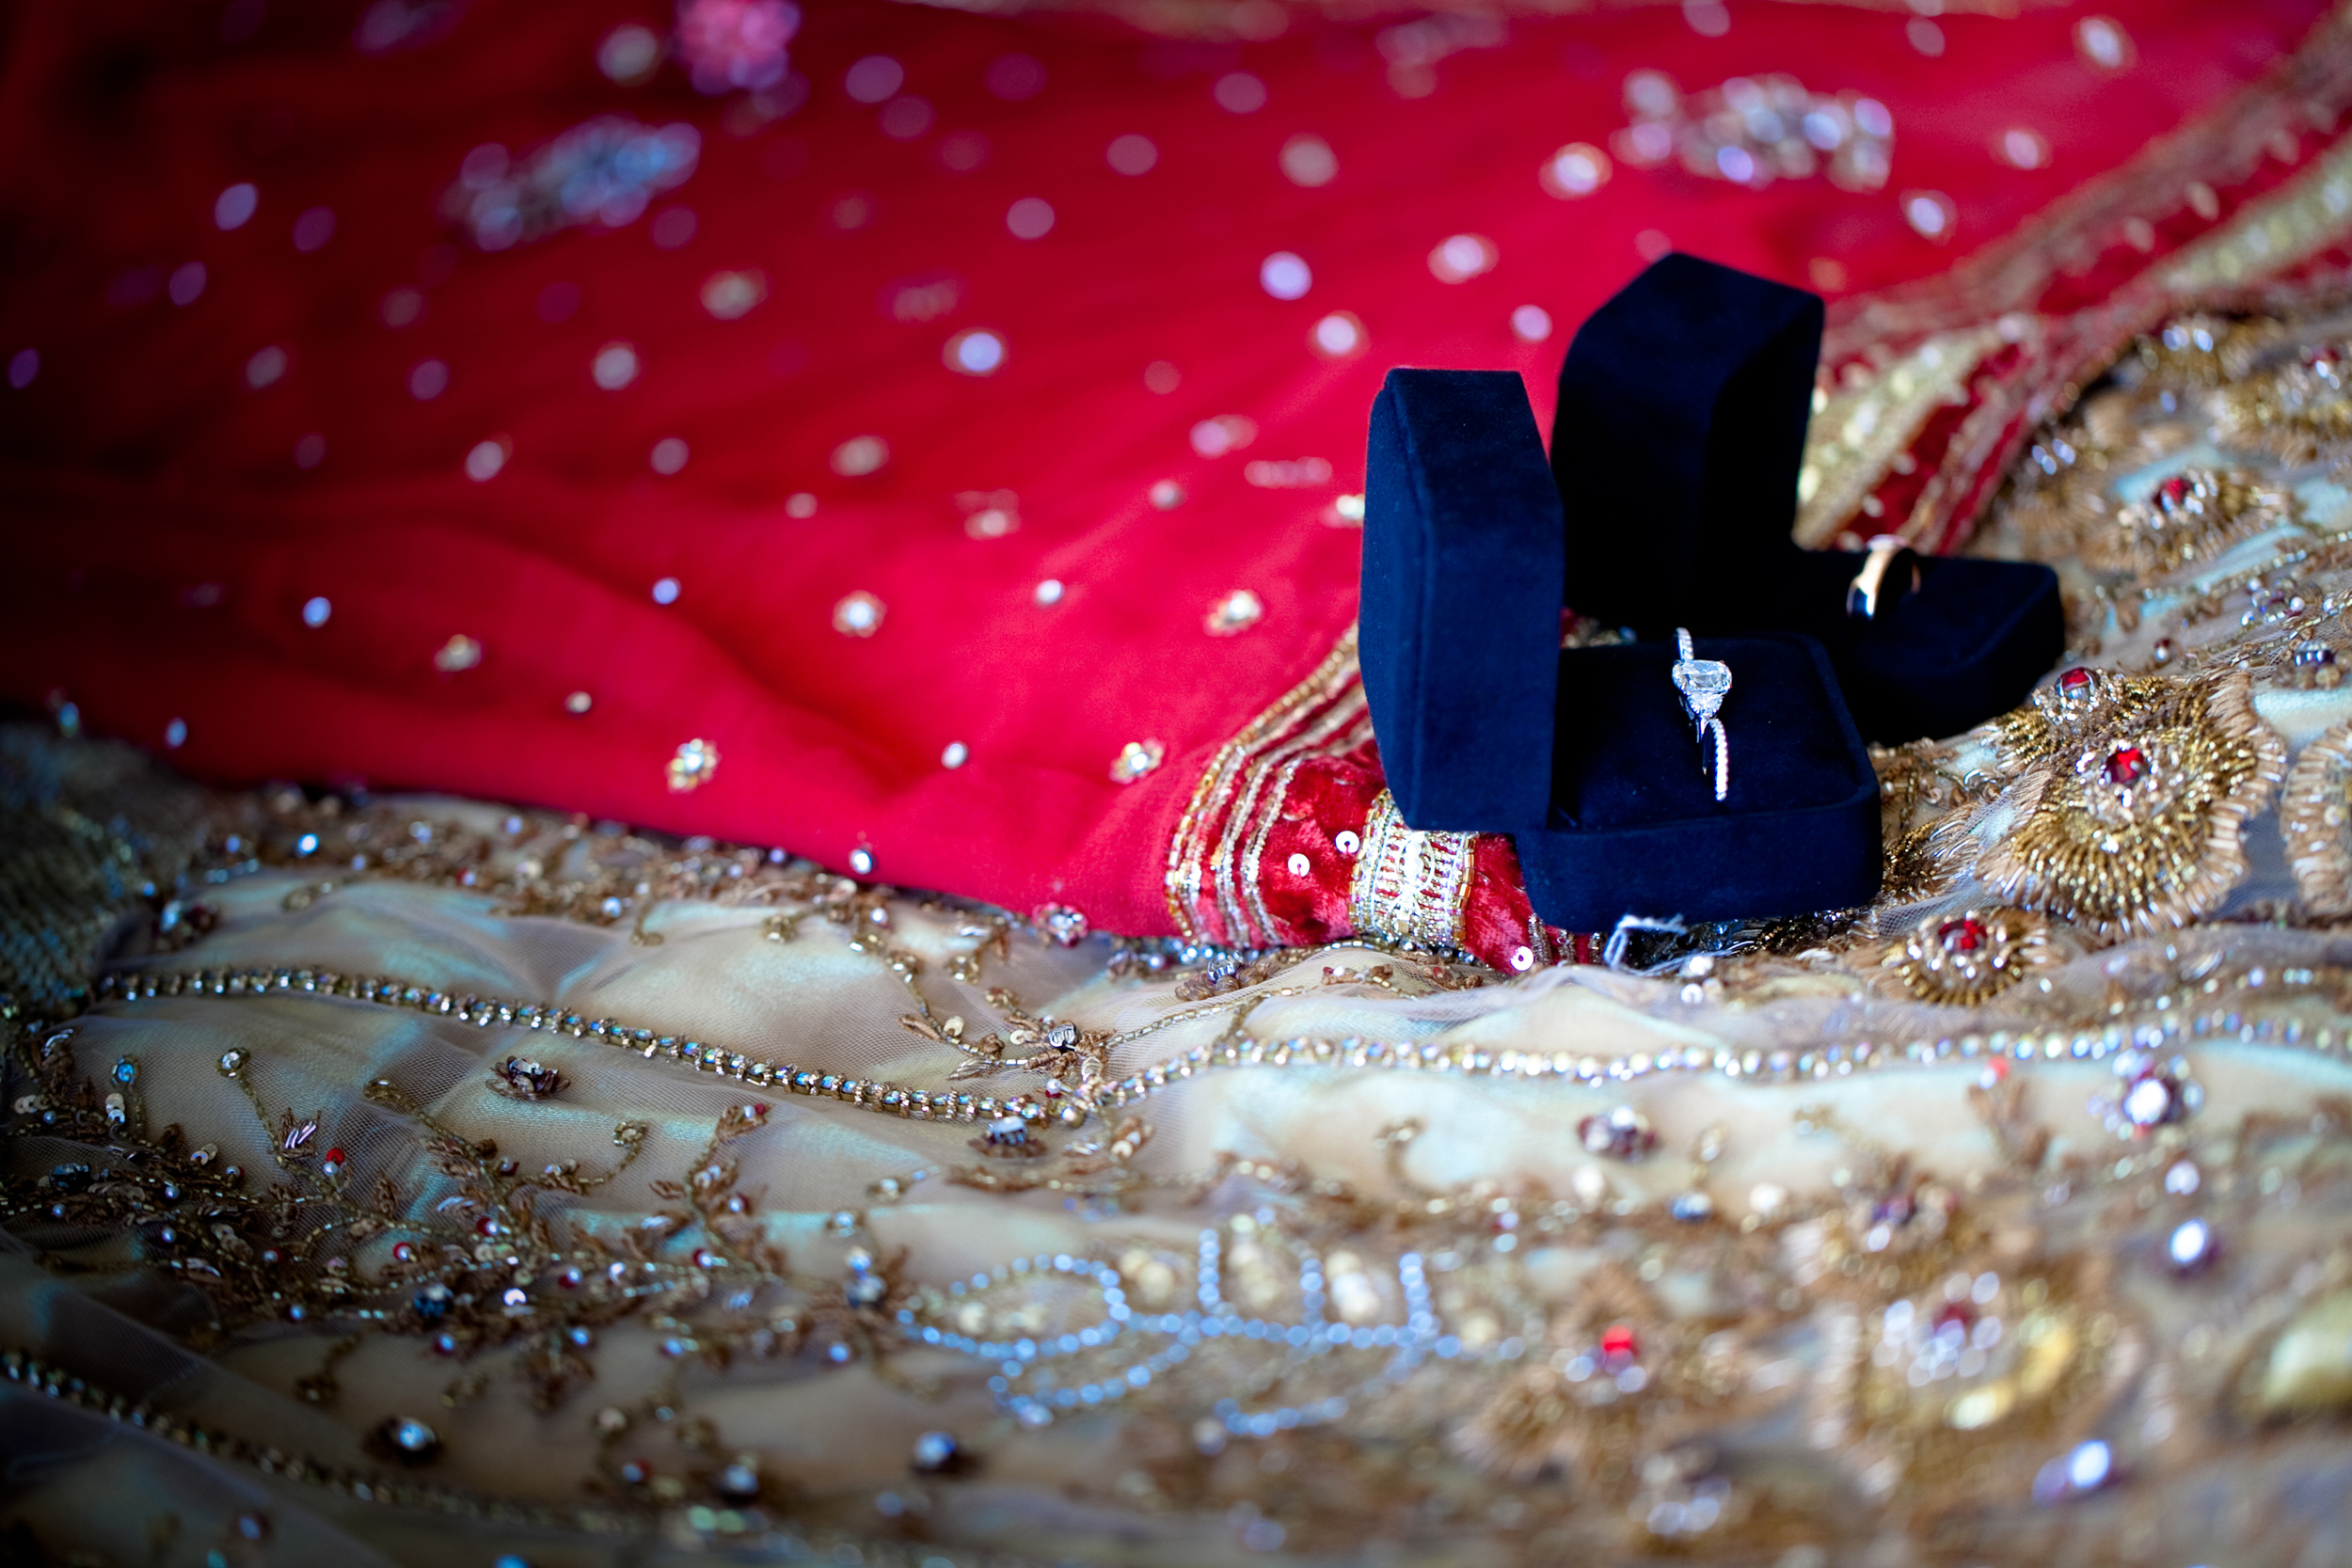 IN COLORFUL WEDDING STYLE